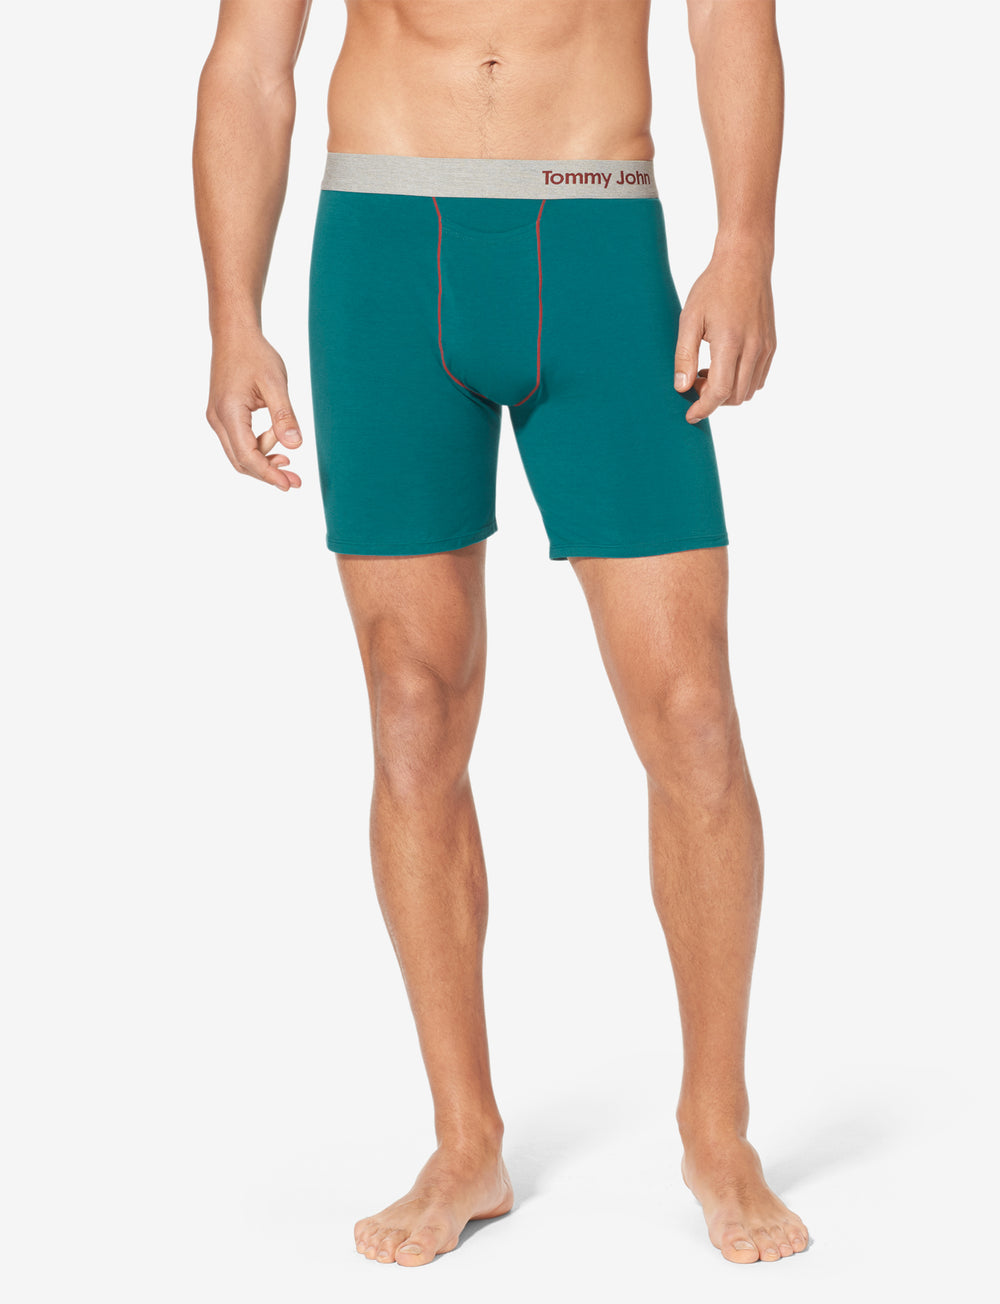 Cool Cotton Contrast Stitch Relaxed Fit Boxer Details Image